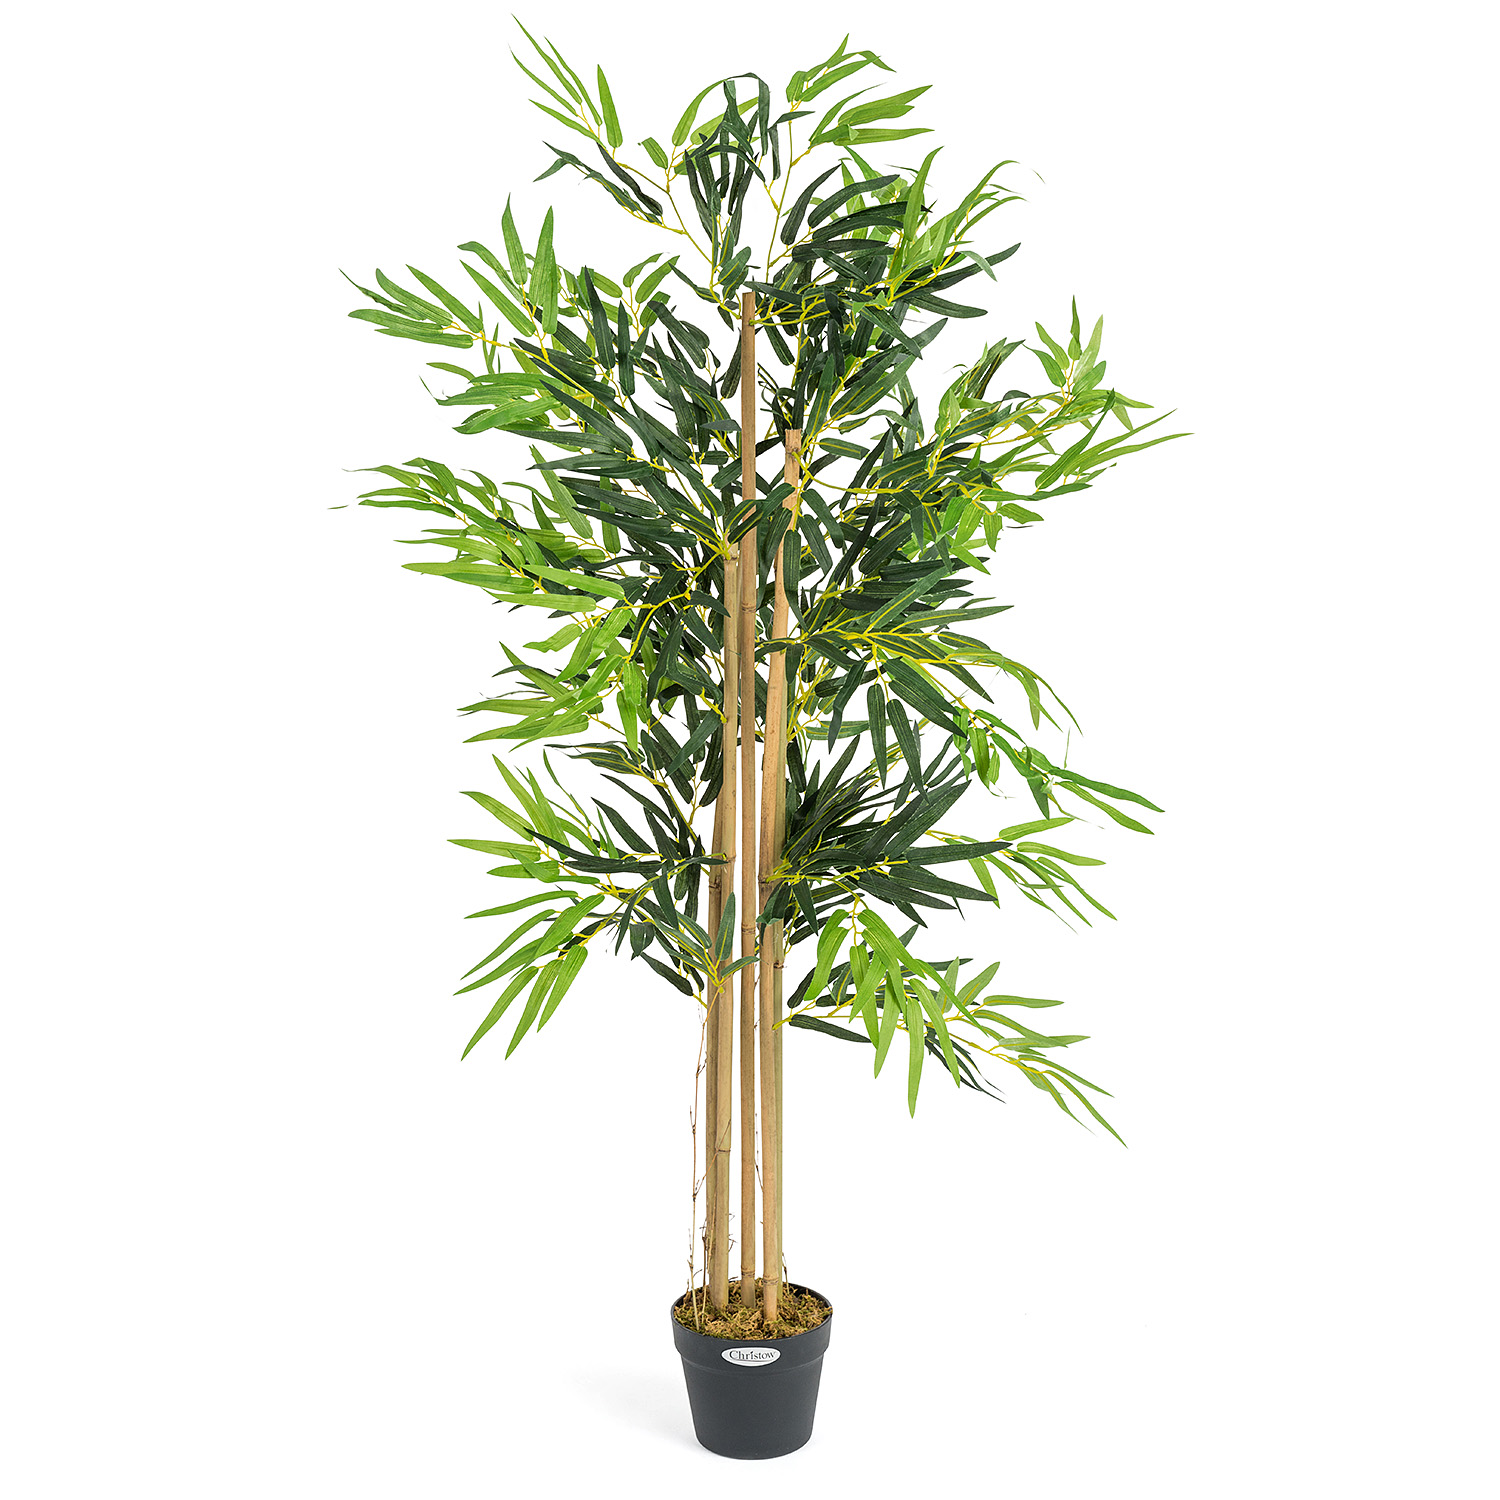 Image of Artificial Bamboo Plant - 4ft